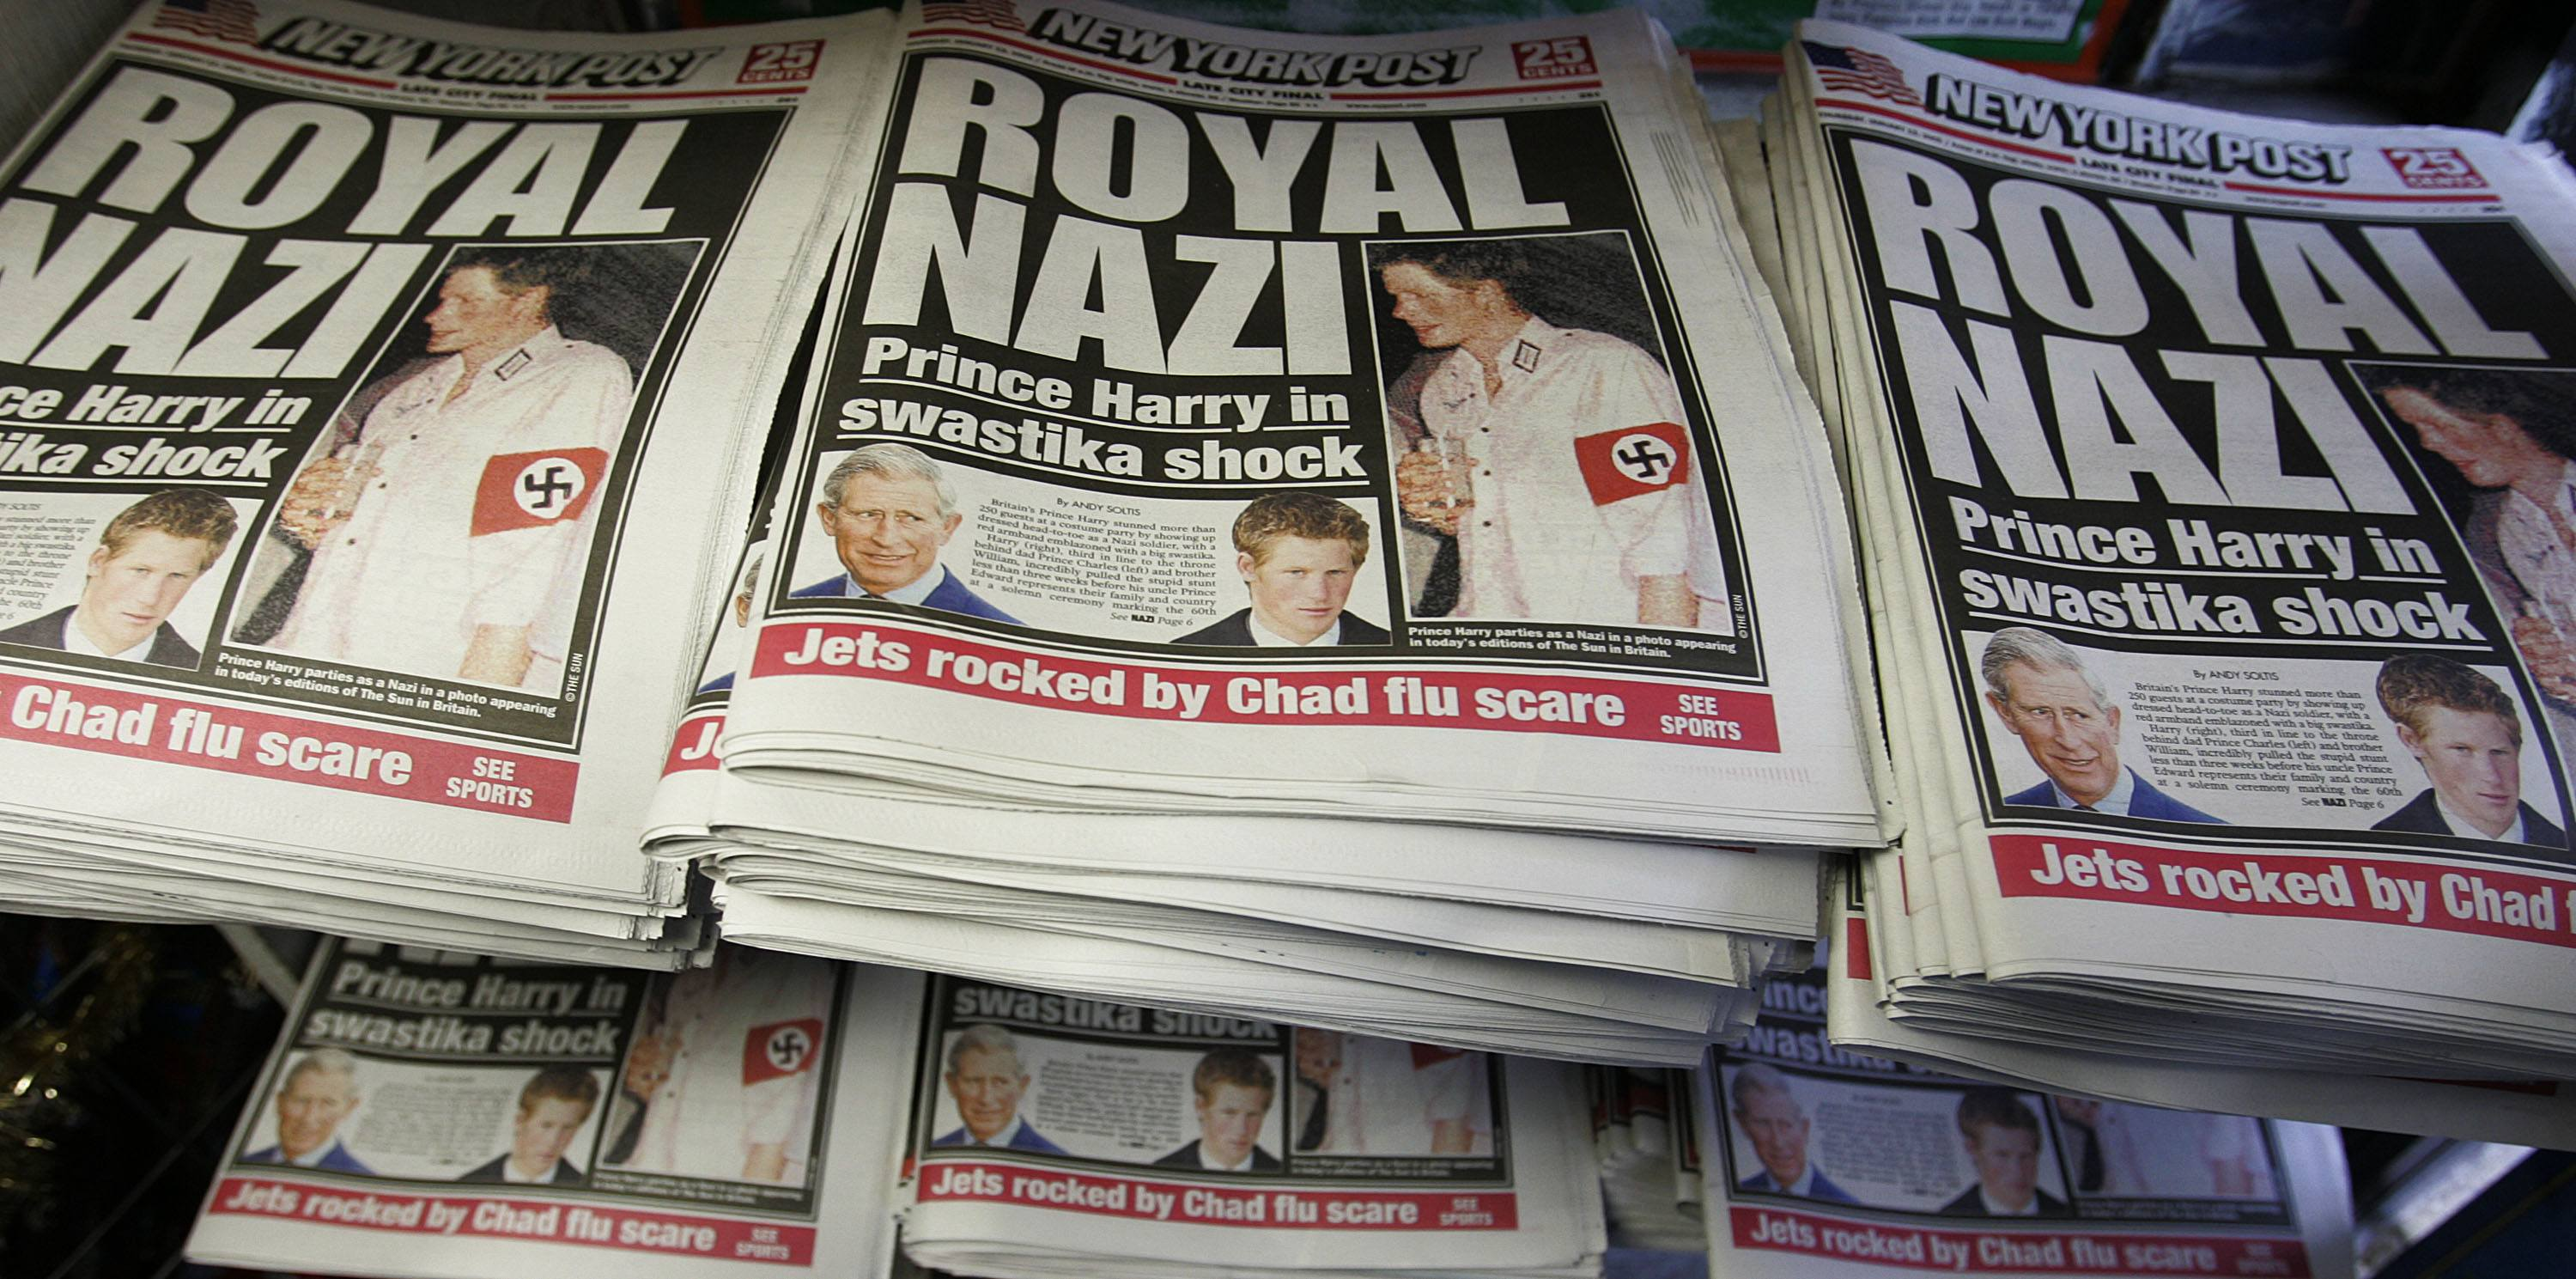 Prince Harry Wears A Nazi Uniform To Party